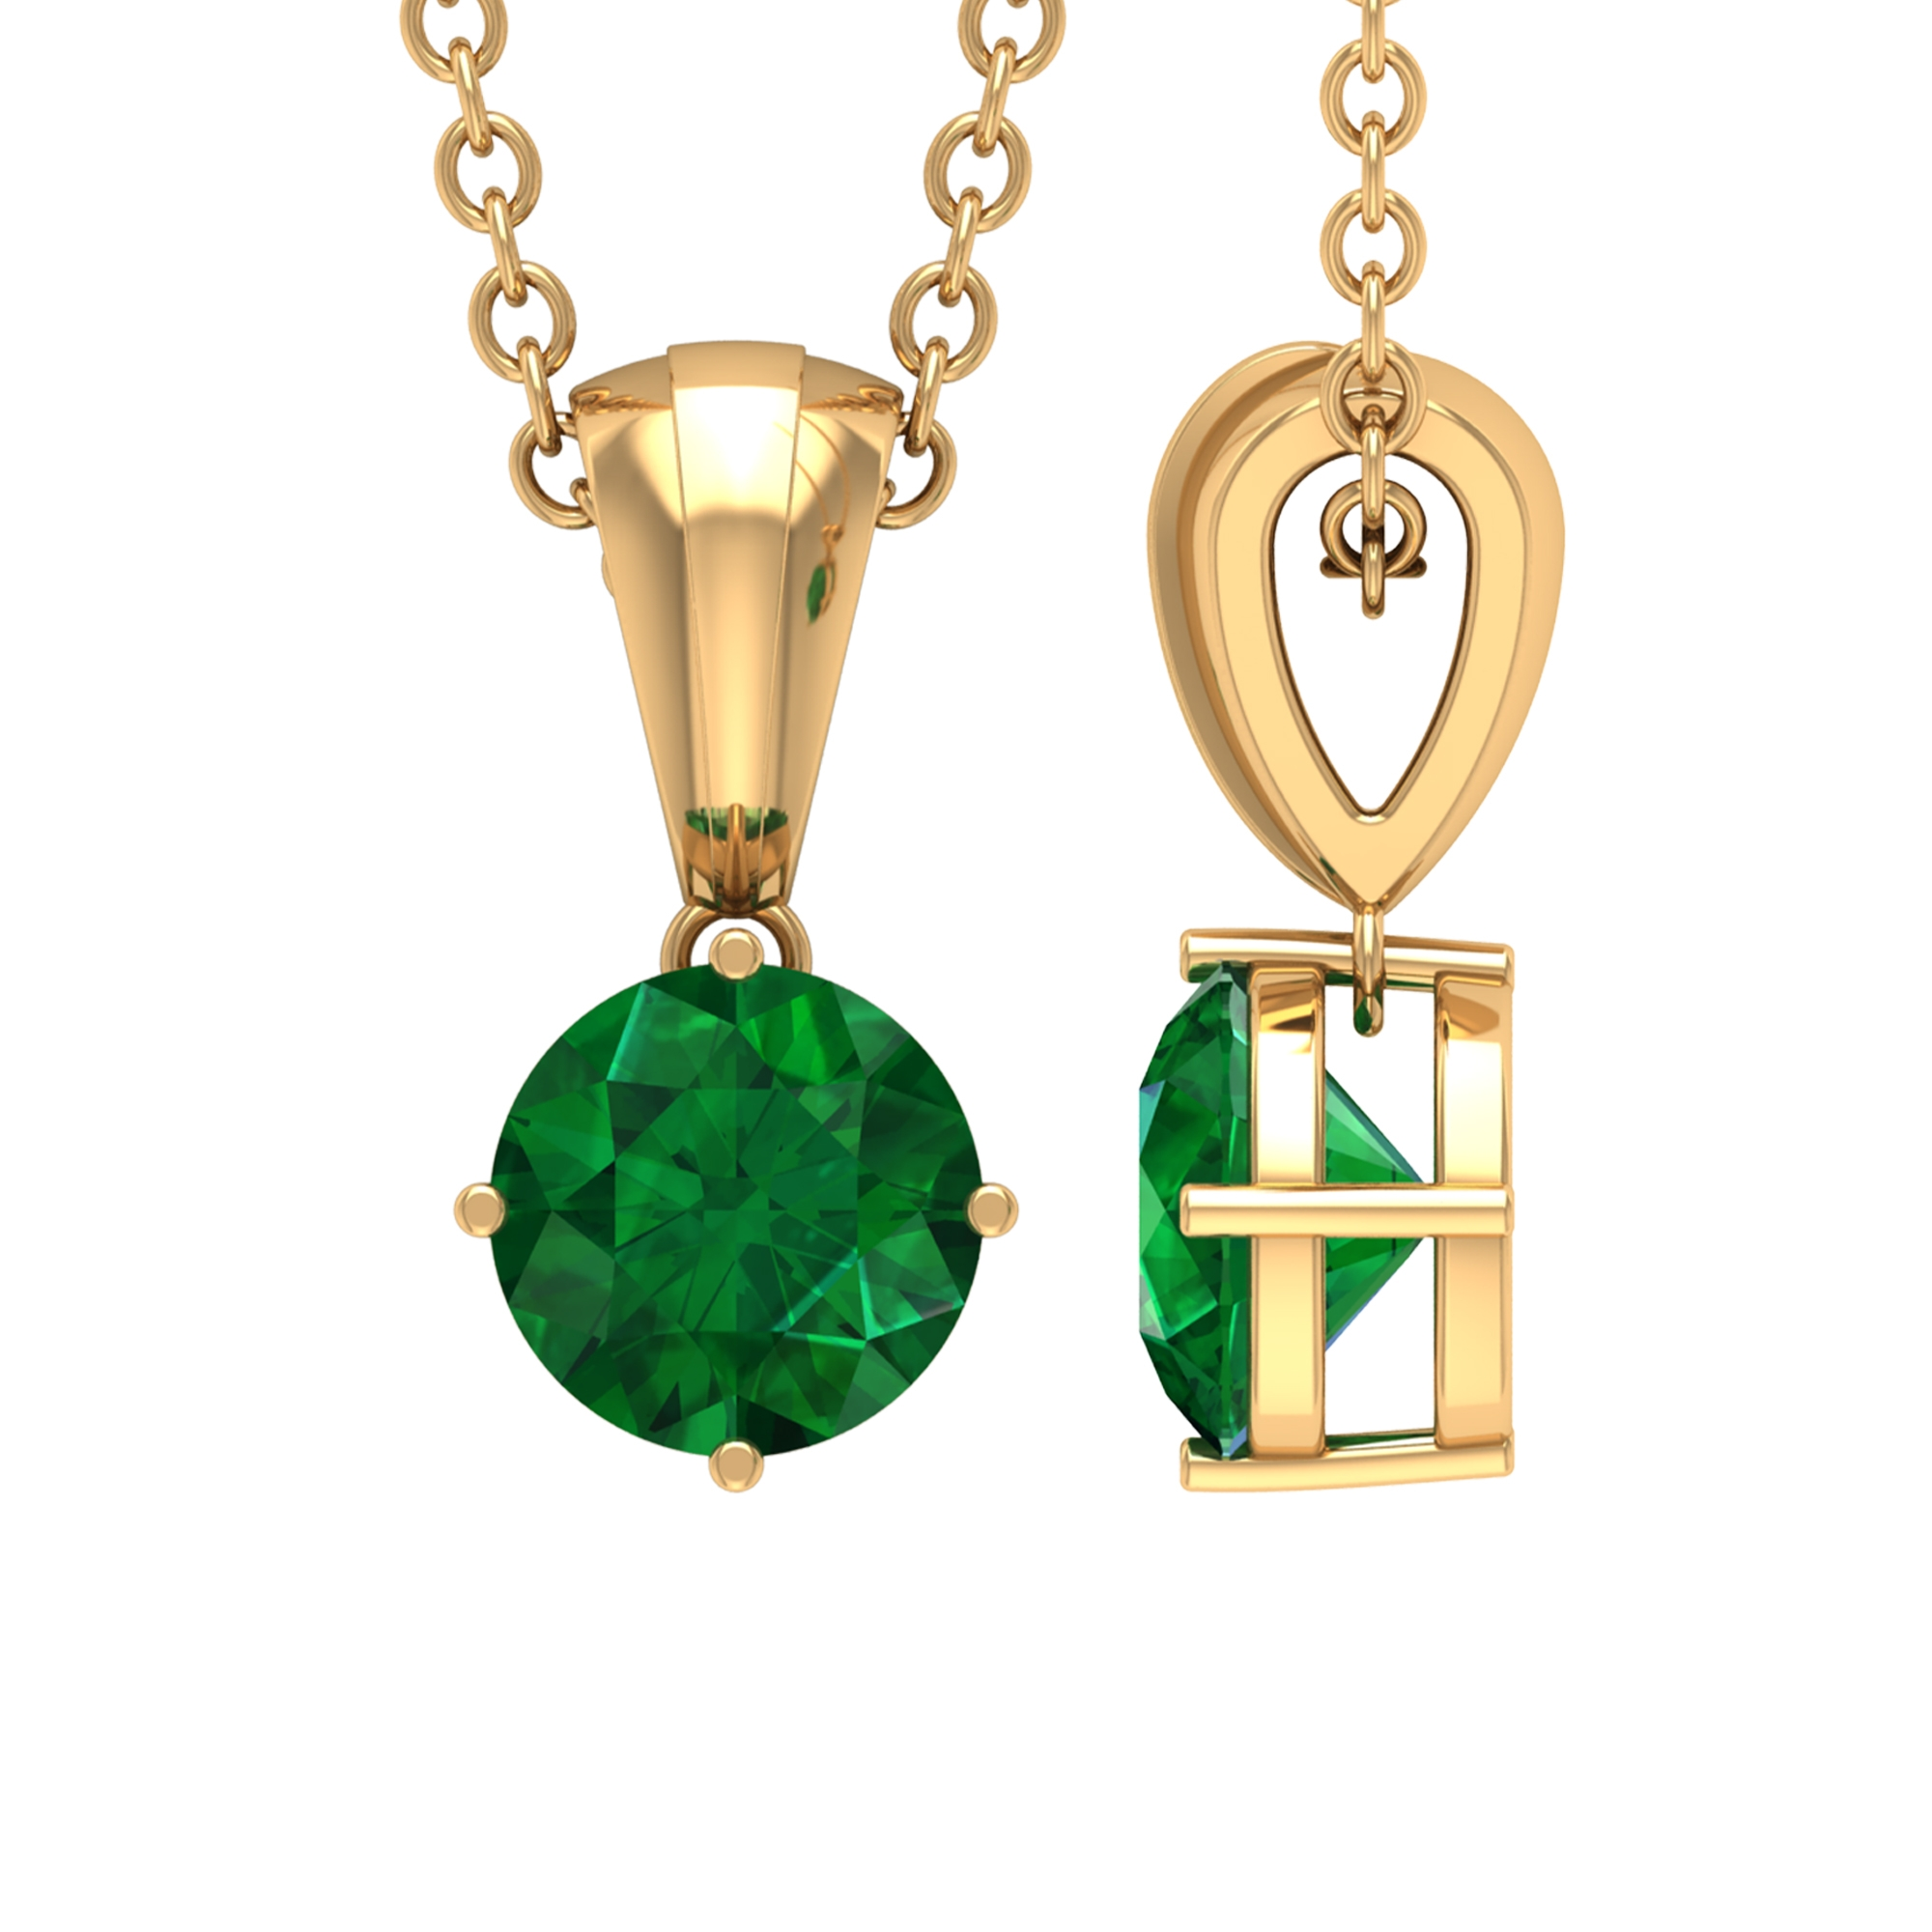 5 MM Round Cut Emerald Solitaire Pendant in 4 Prong Diagonal Setting